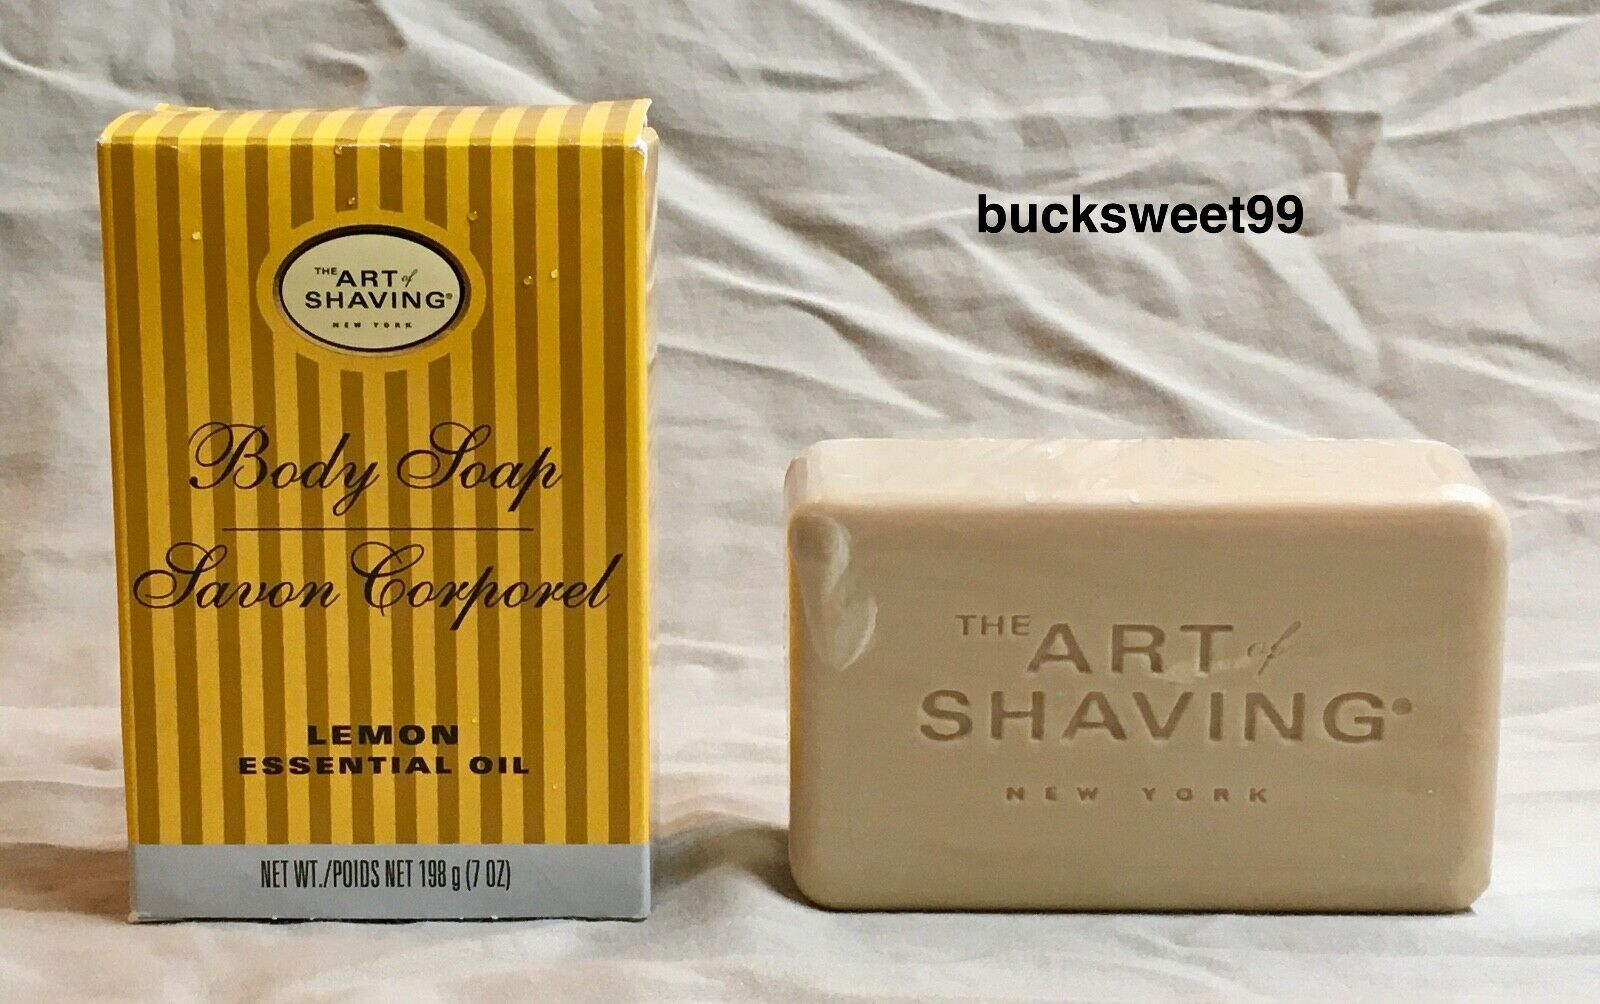 The Art Of Shaving Body Soap With Lemon Essential Oil